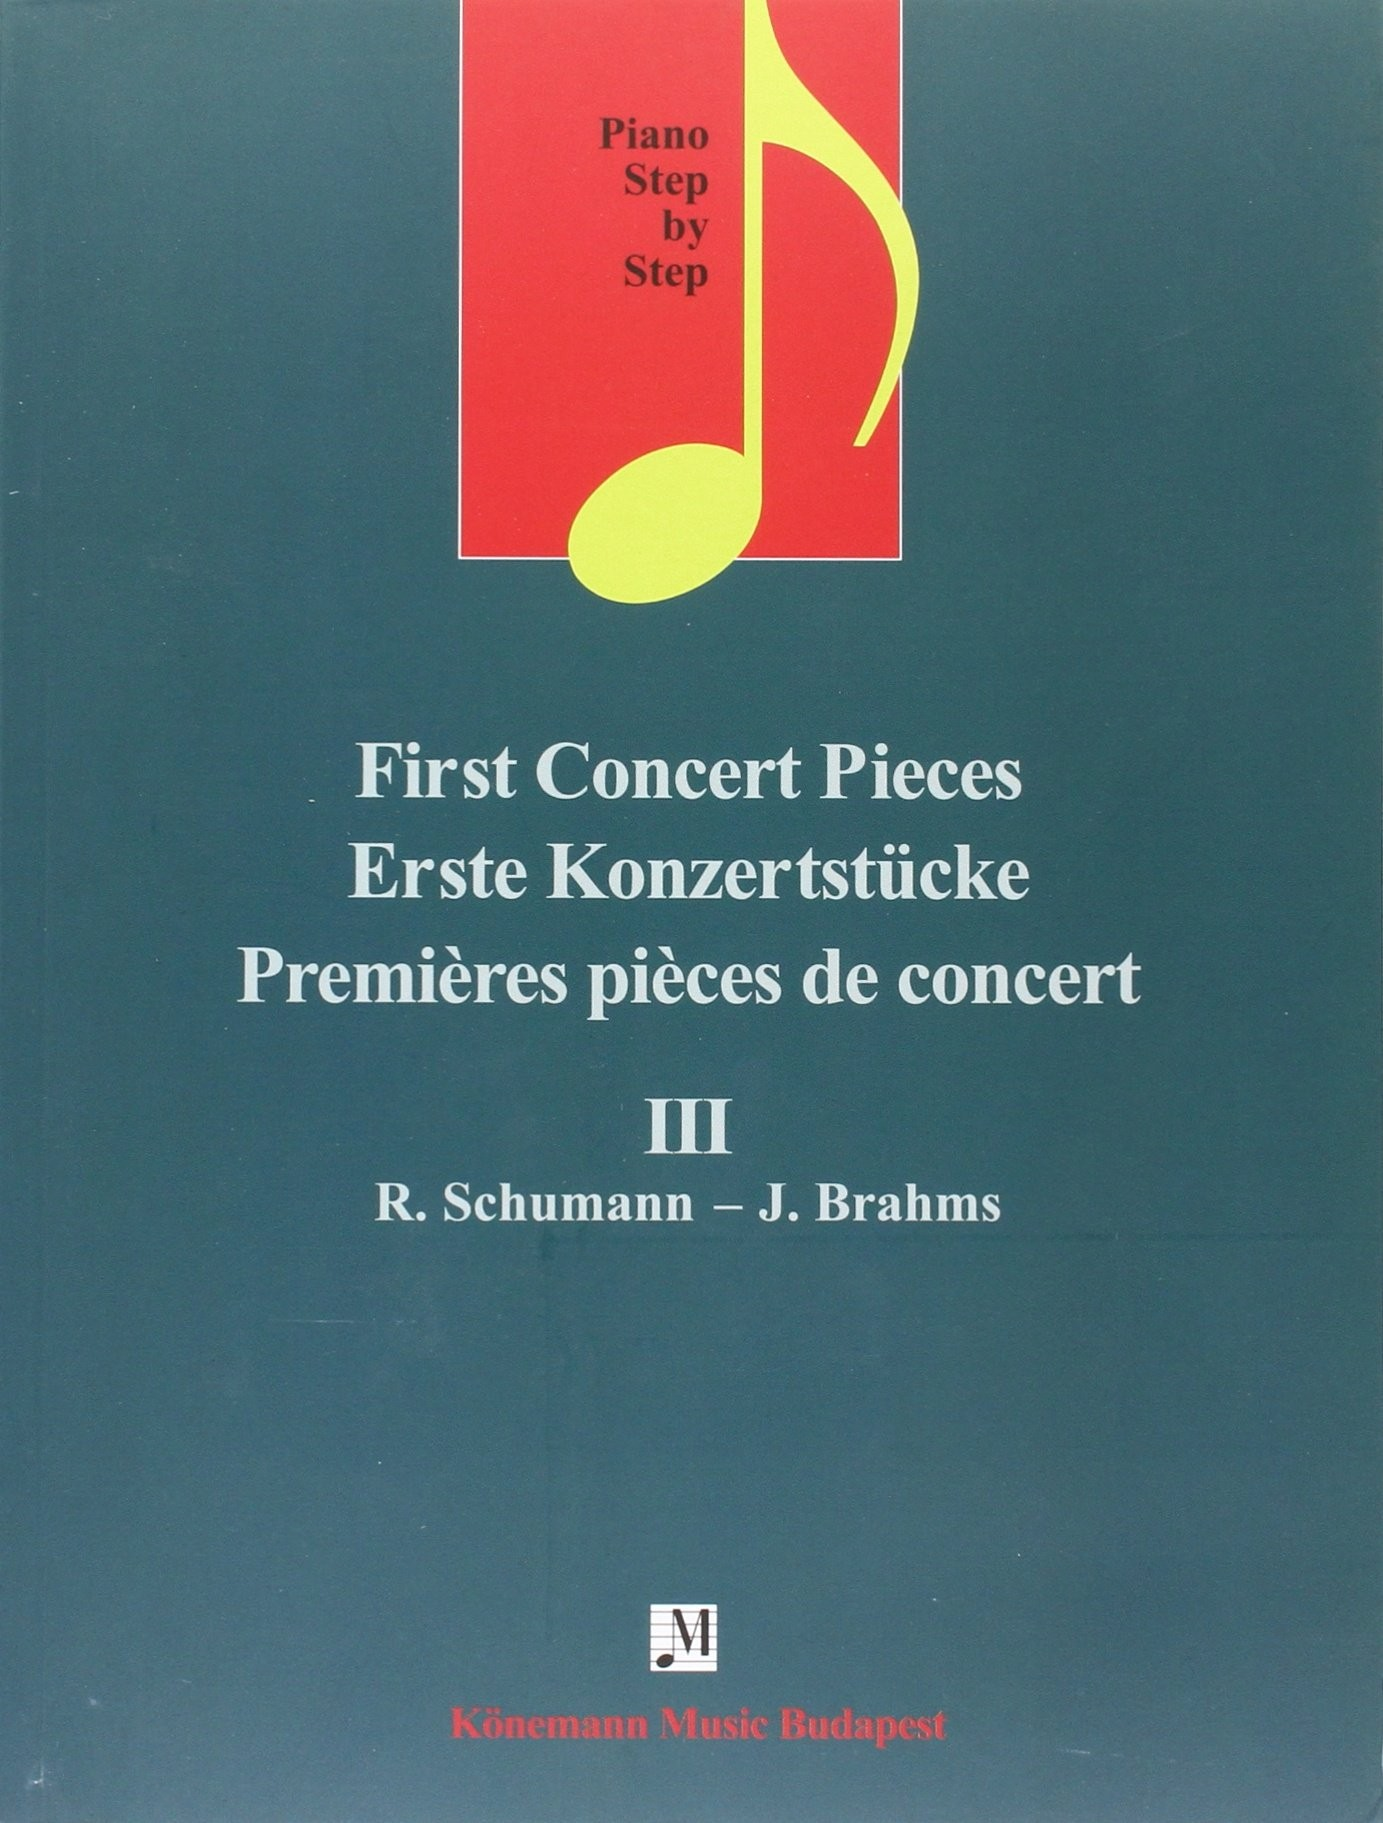 Piano Step by Step  First Concert Pieces III